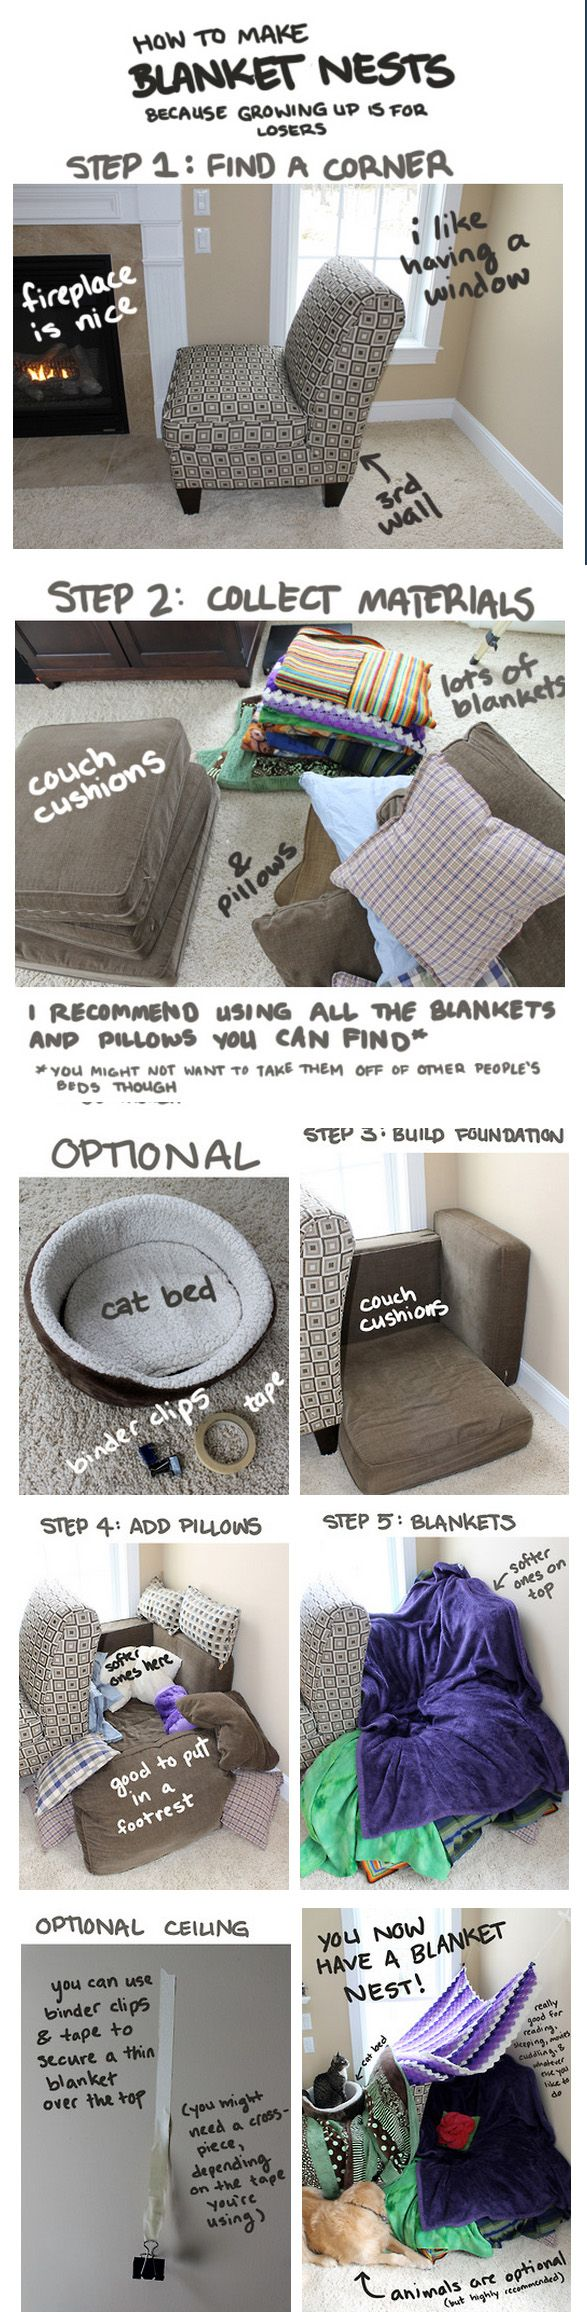 Build A Blanket How To Build A Blanket Nest Looks Like A Great Idea Diy